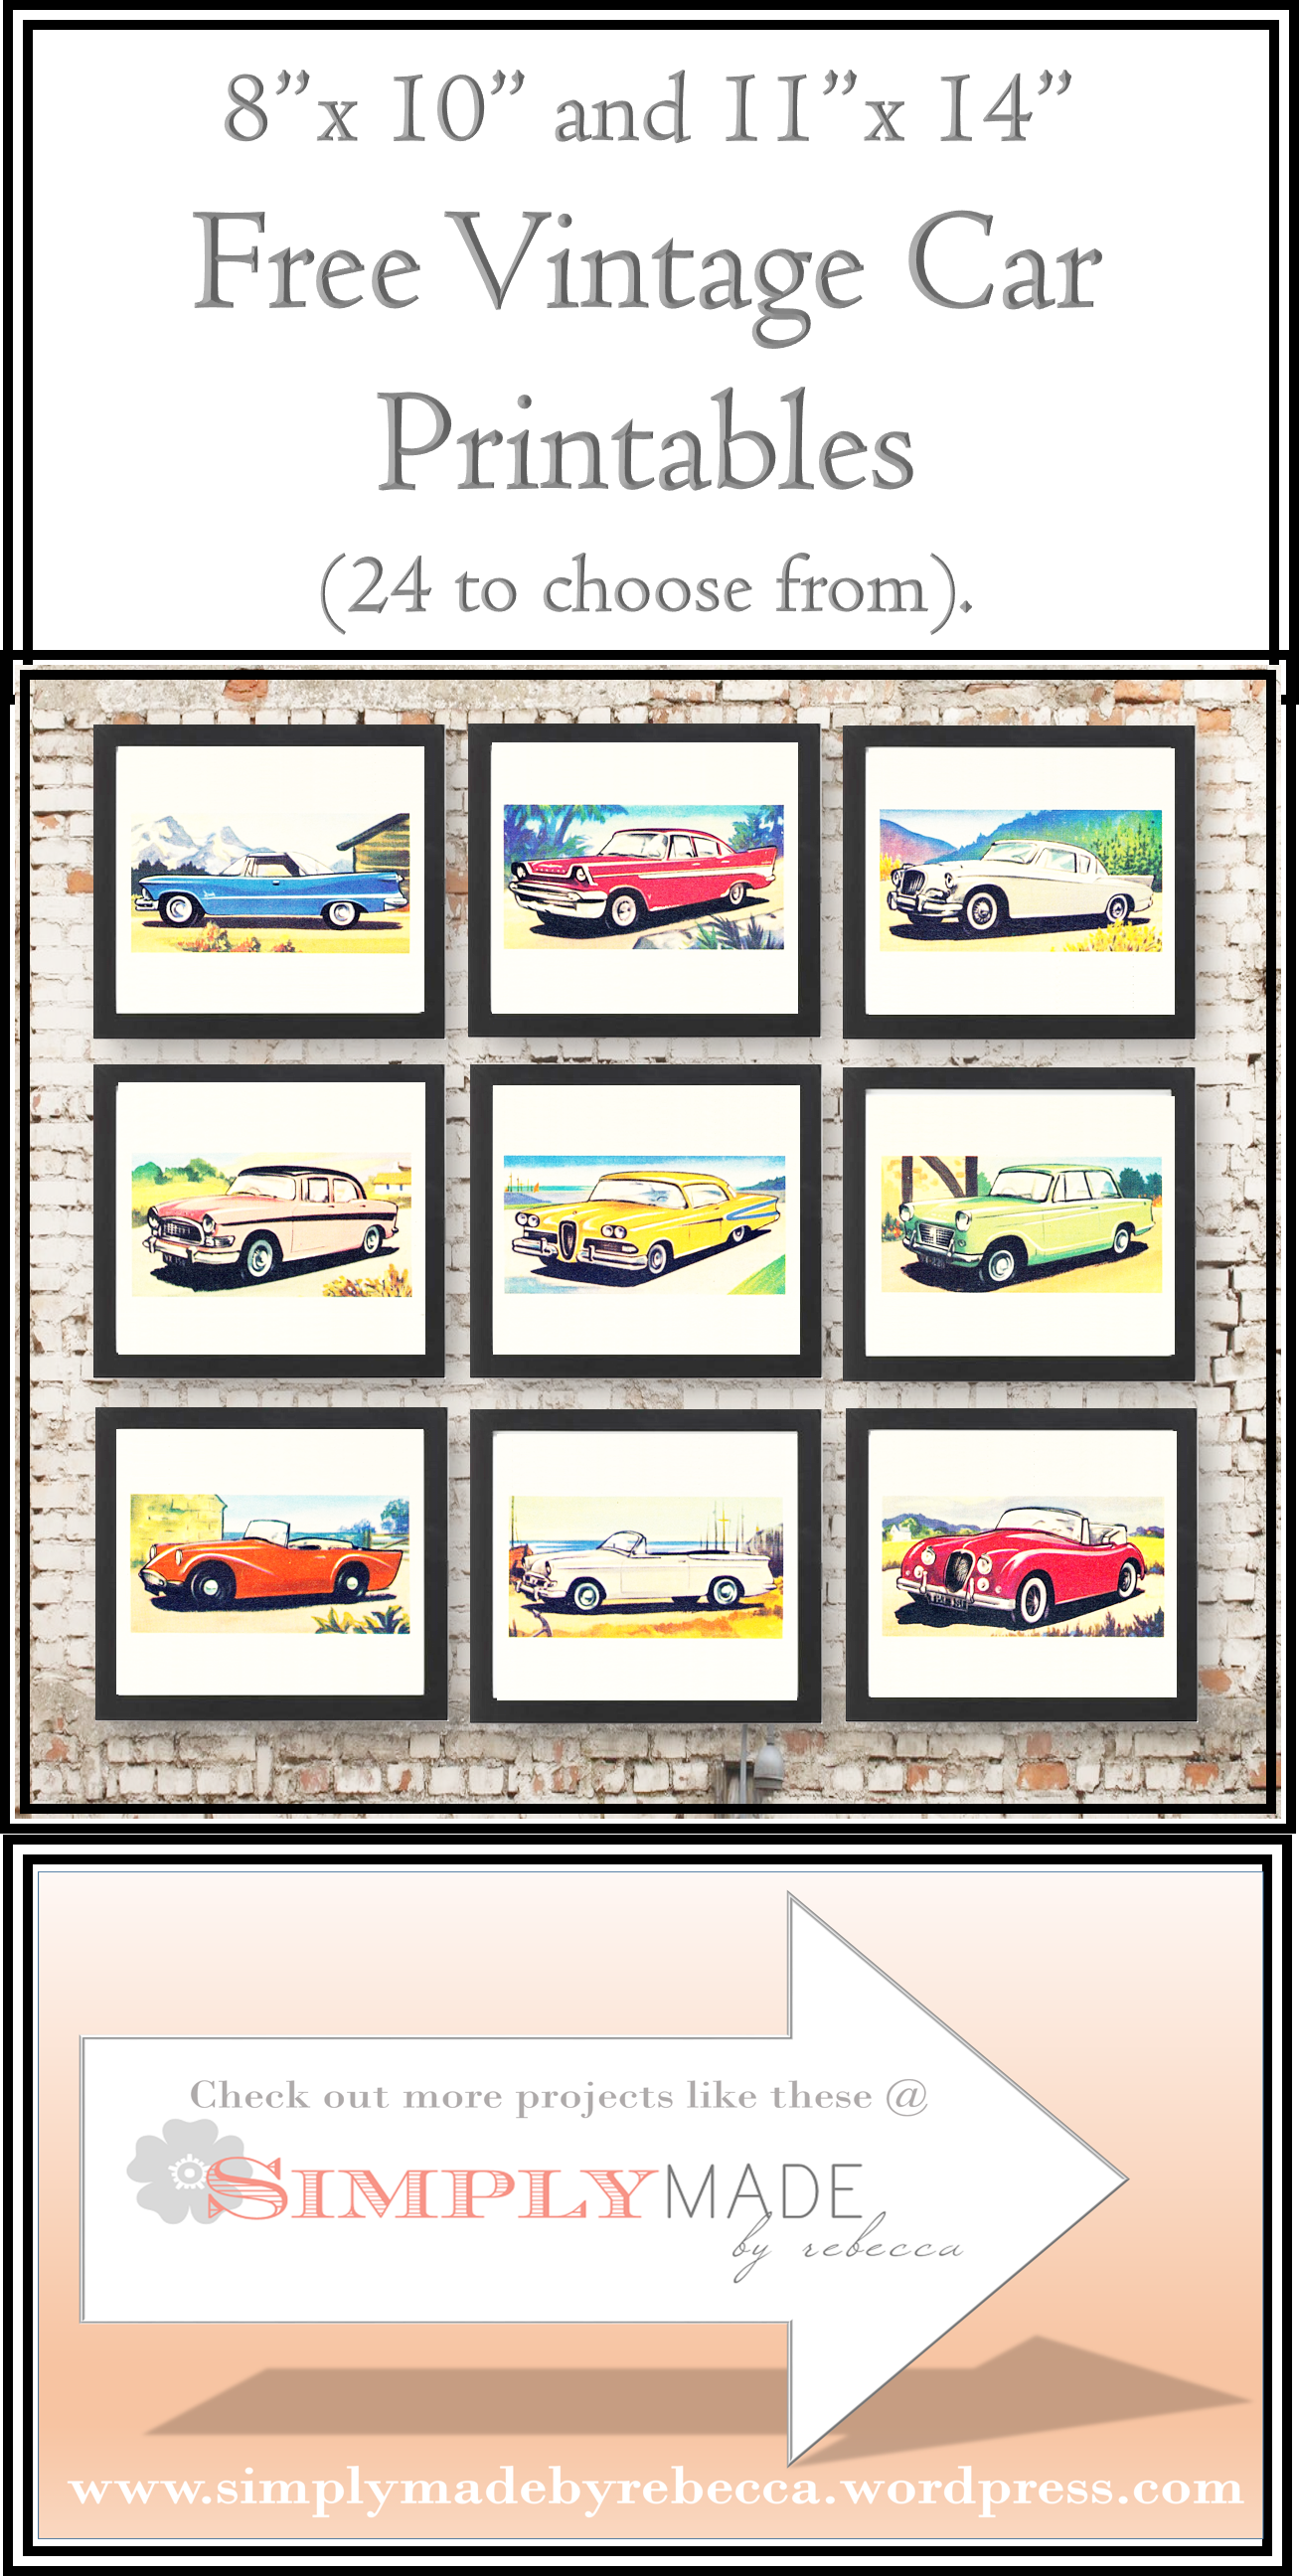 image regarding Free Vintage Printable referred to as Free of charge Classic Car or truck Printables